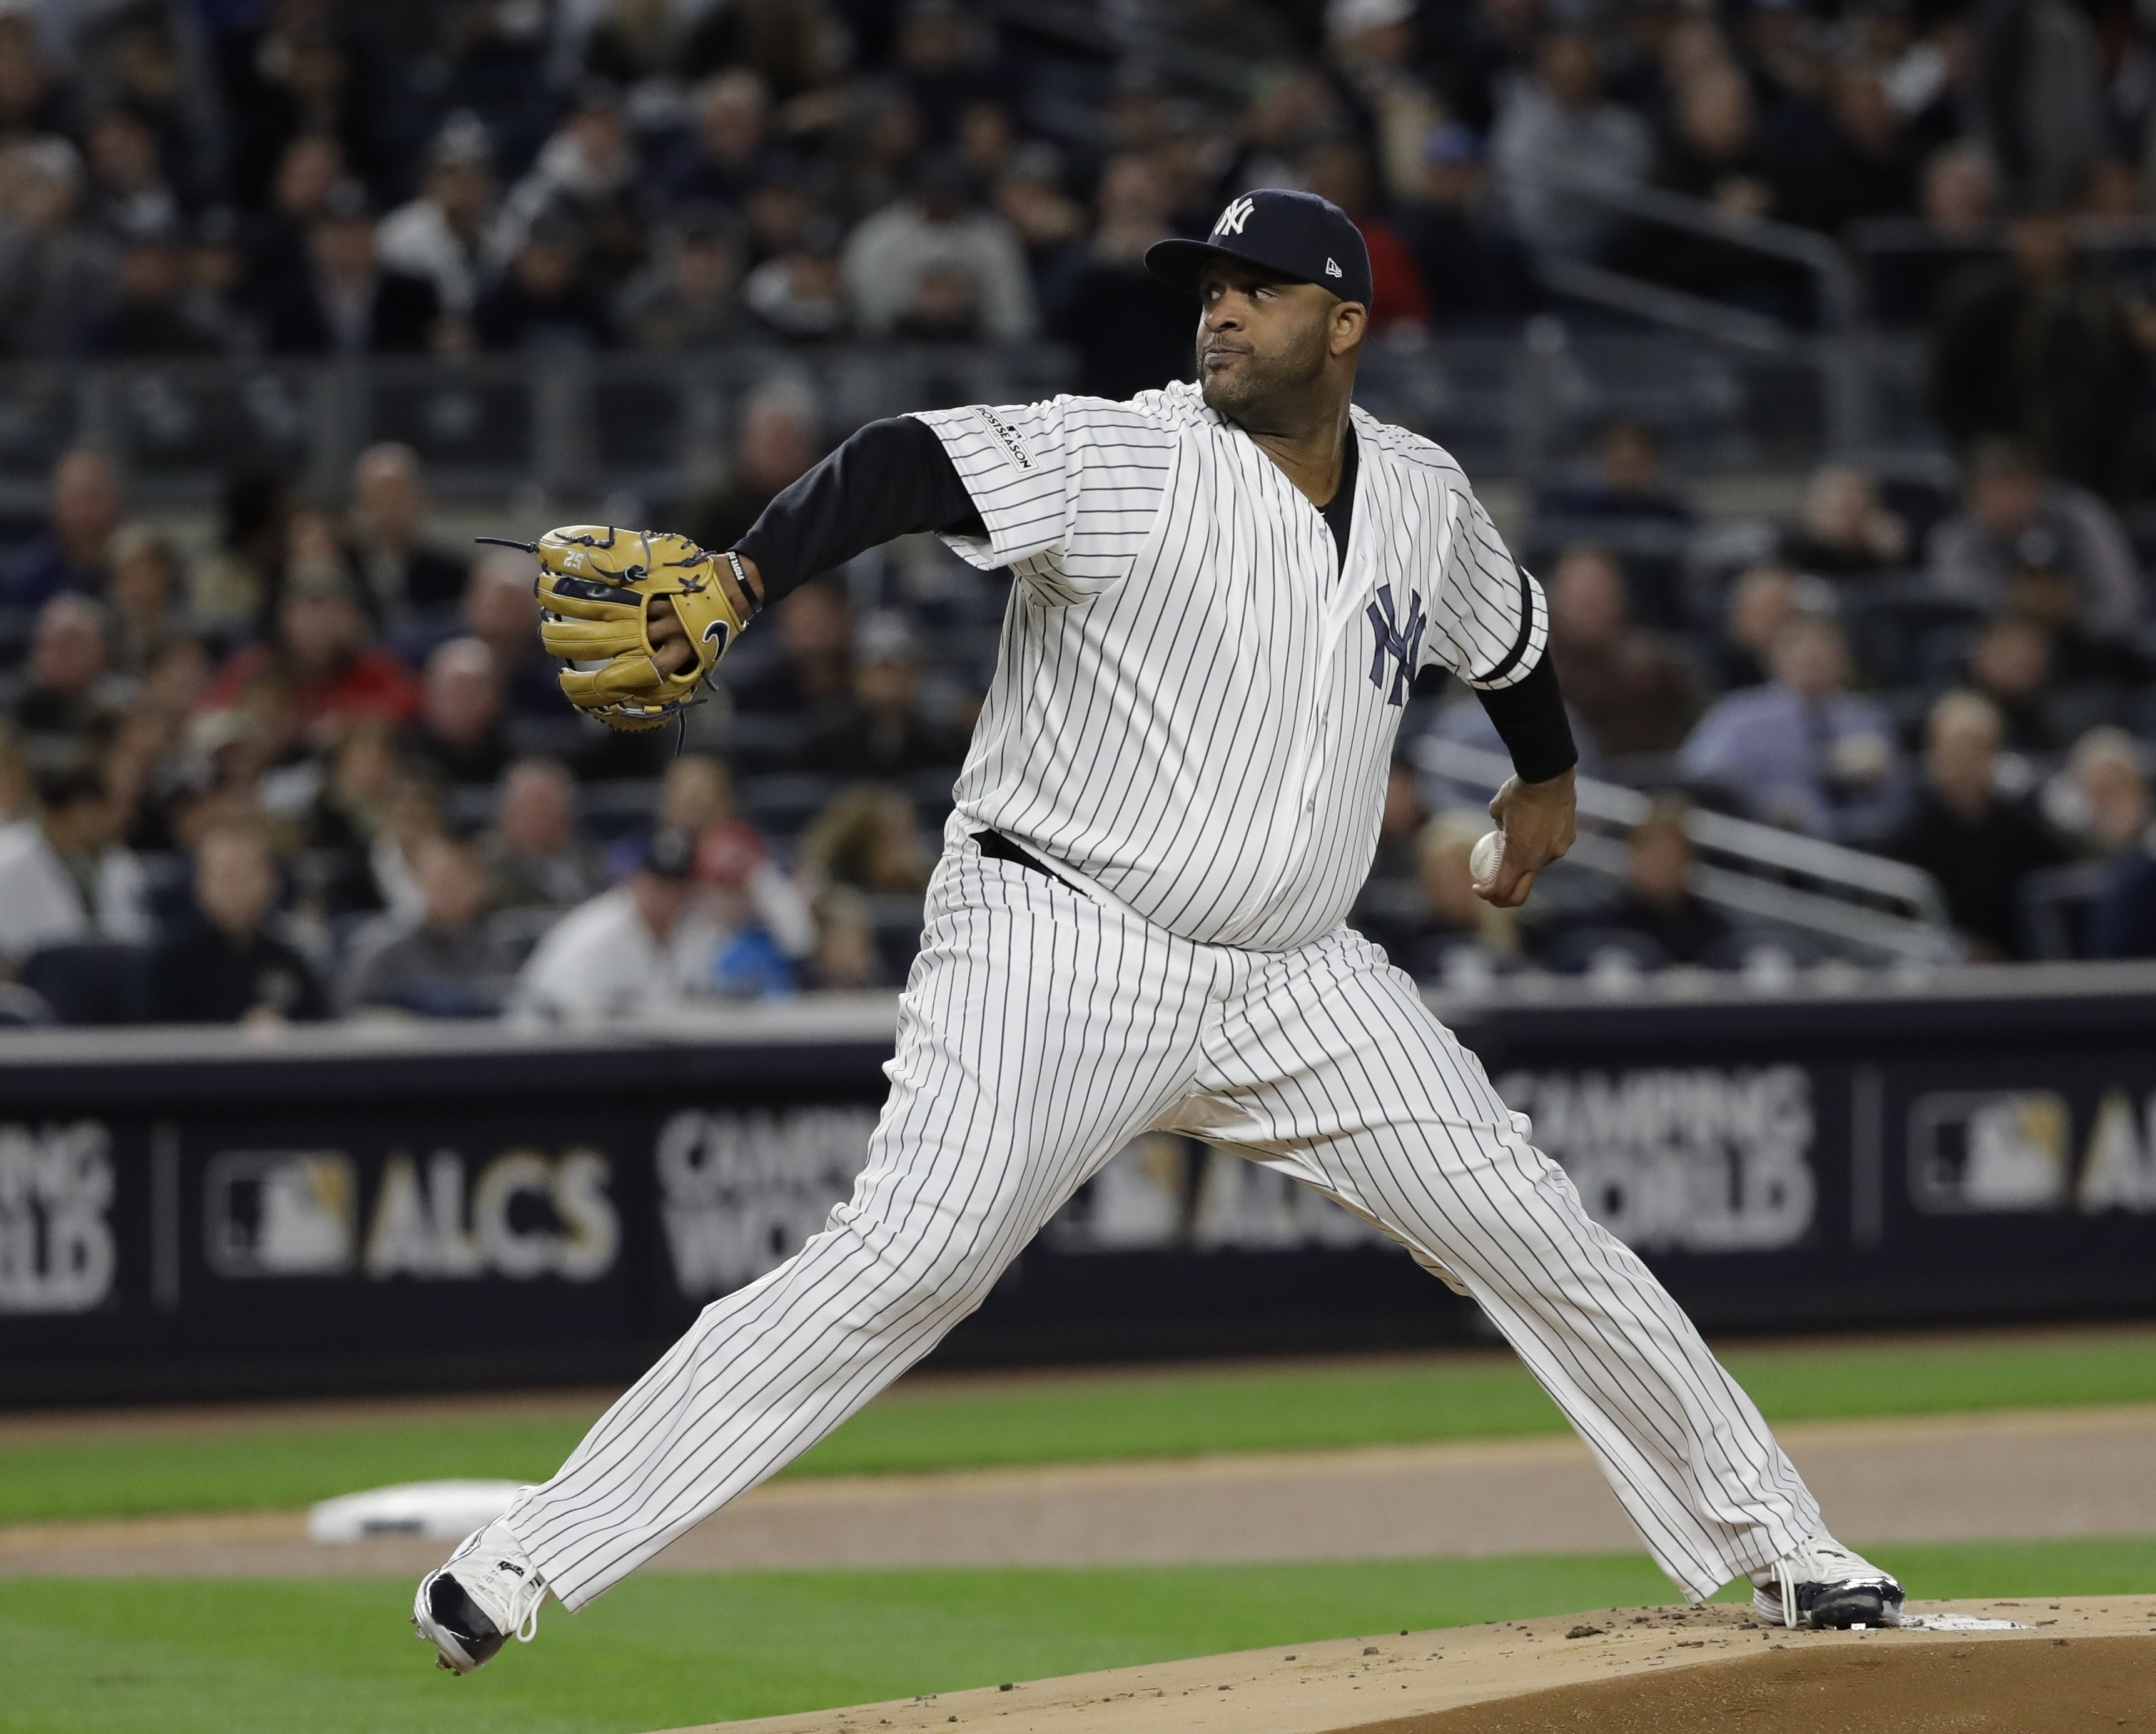 Yankees relying on a resurgent CC Sabathia to send them to World Series